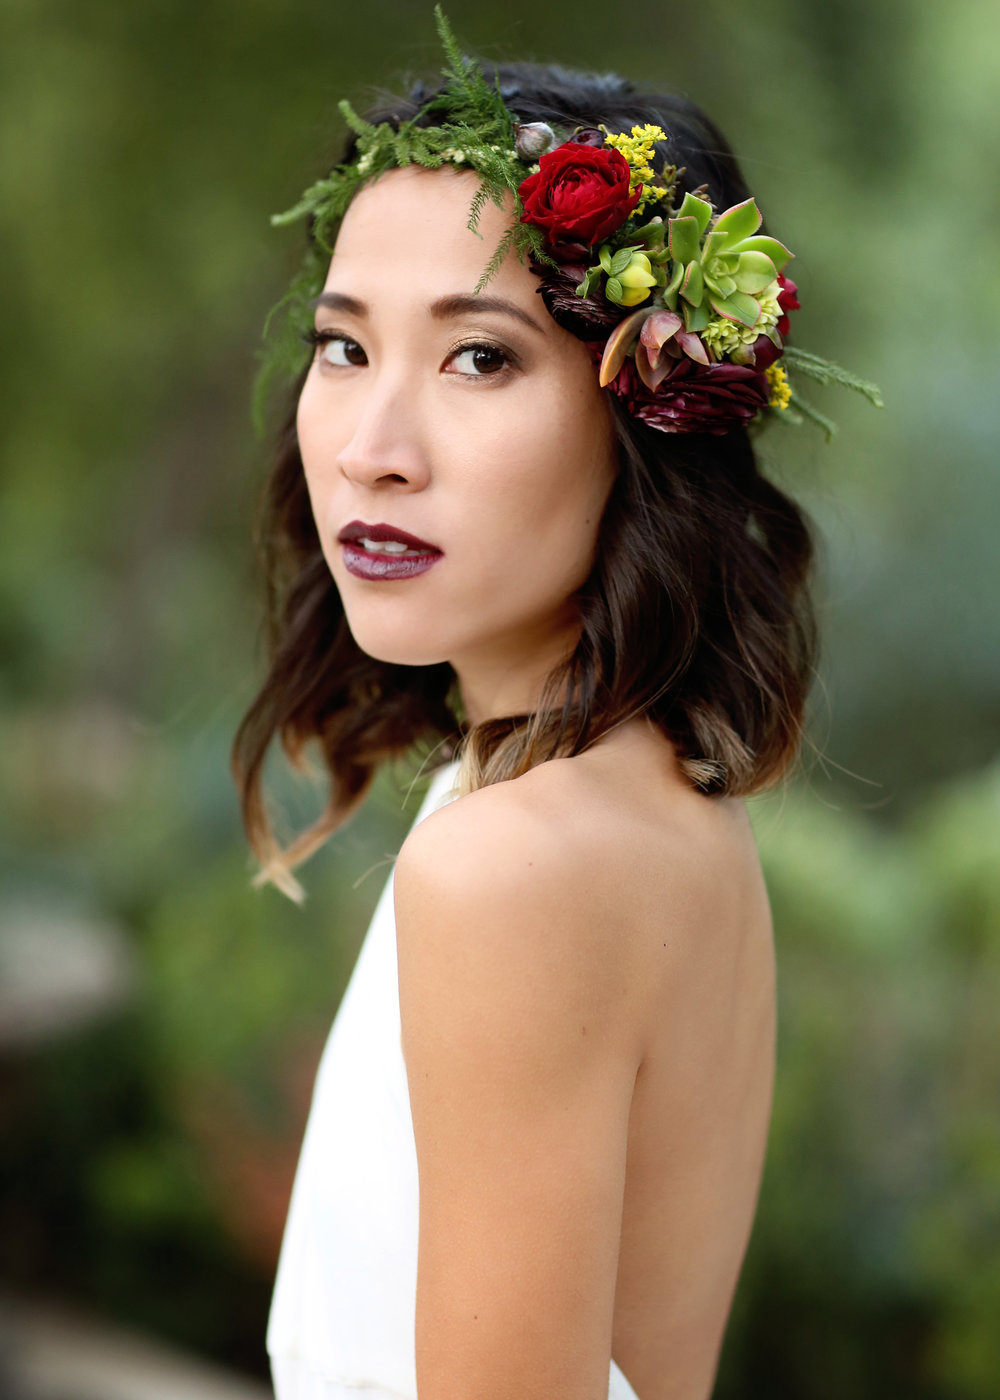 Boho Bride Flower Crown - A Modern Bohemian Outdoor Wedding Shoot - Bleudog Fotography